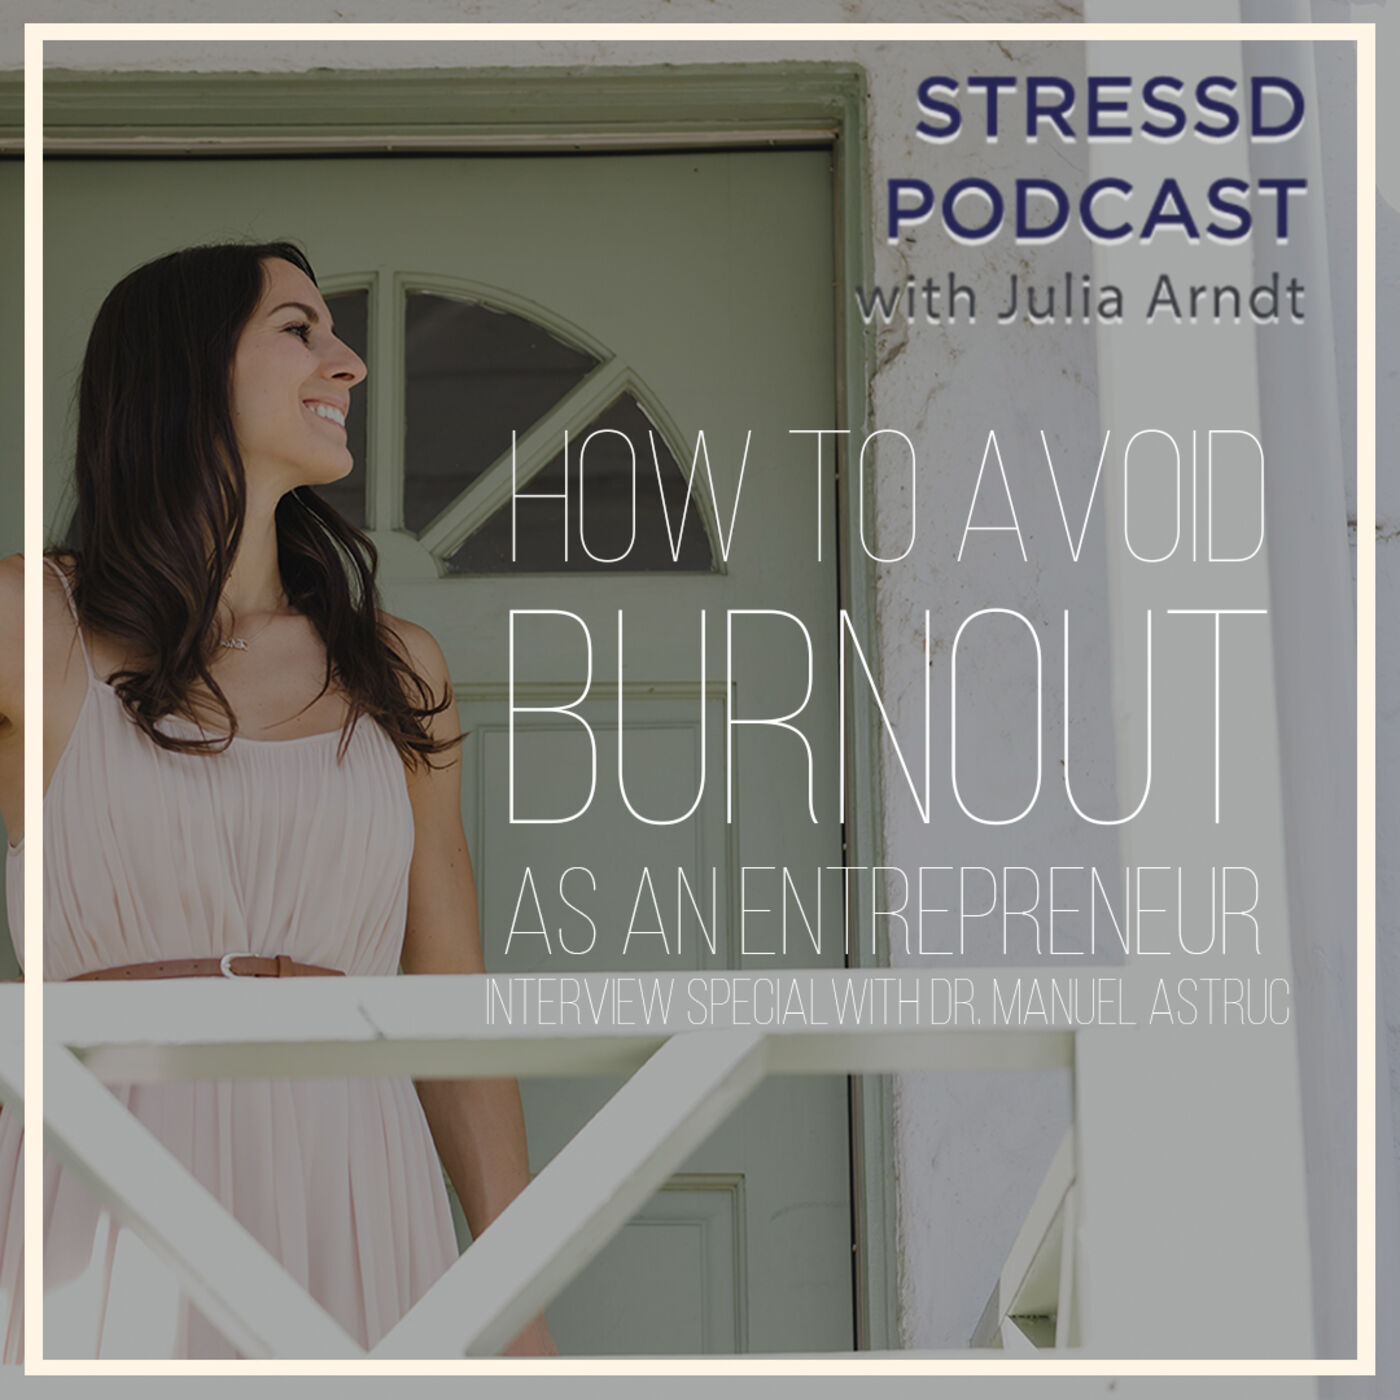 How To Avoid Burnout As An Entrepreneur [INTERVIEW]